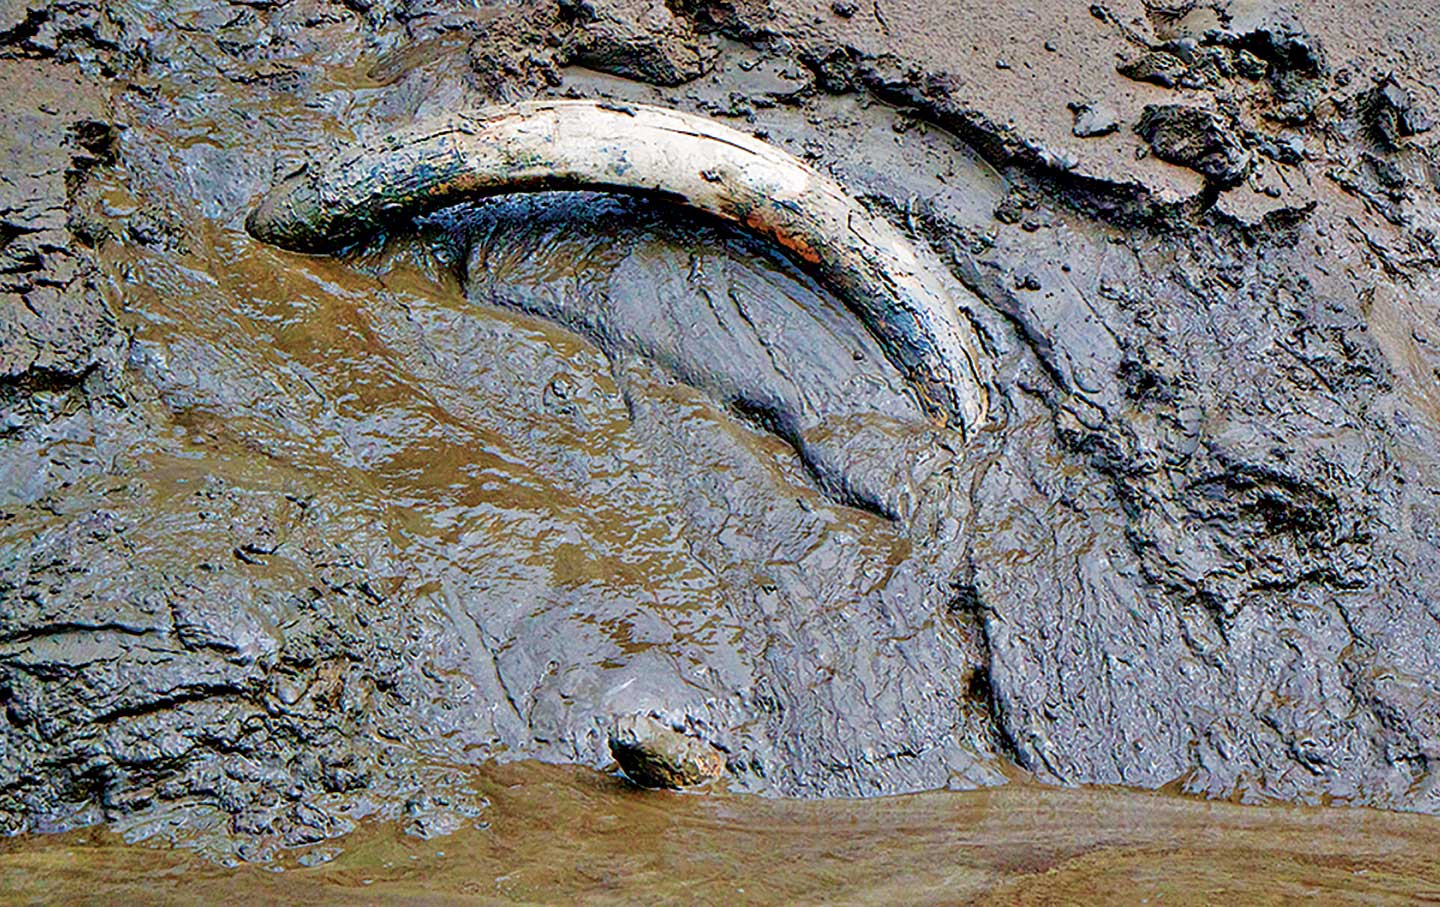 A-mammoth-tusk-exposed-by-placer-mining-near-Dawson-City-Yukon-Territory-Canada